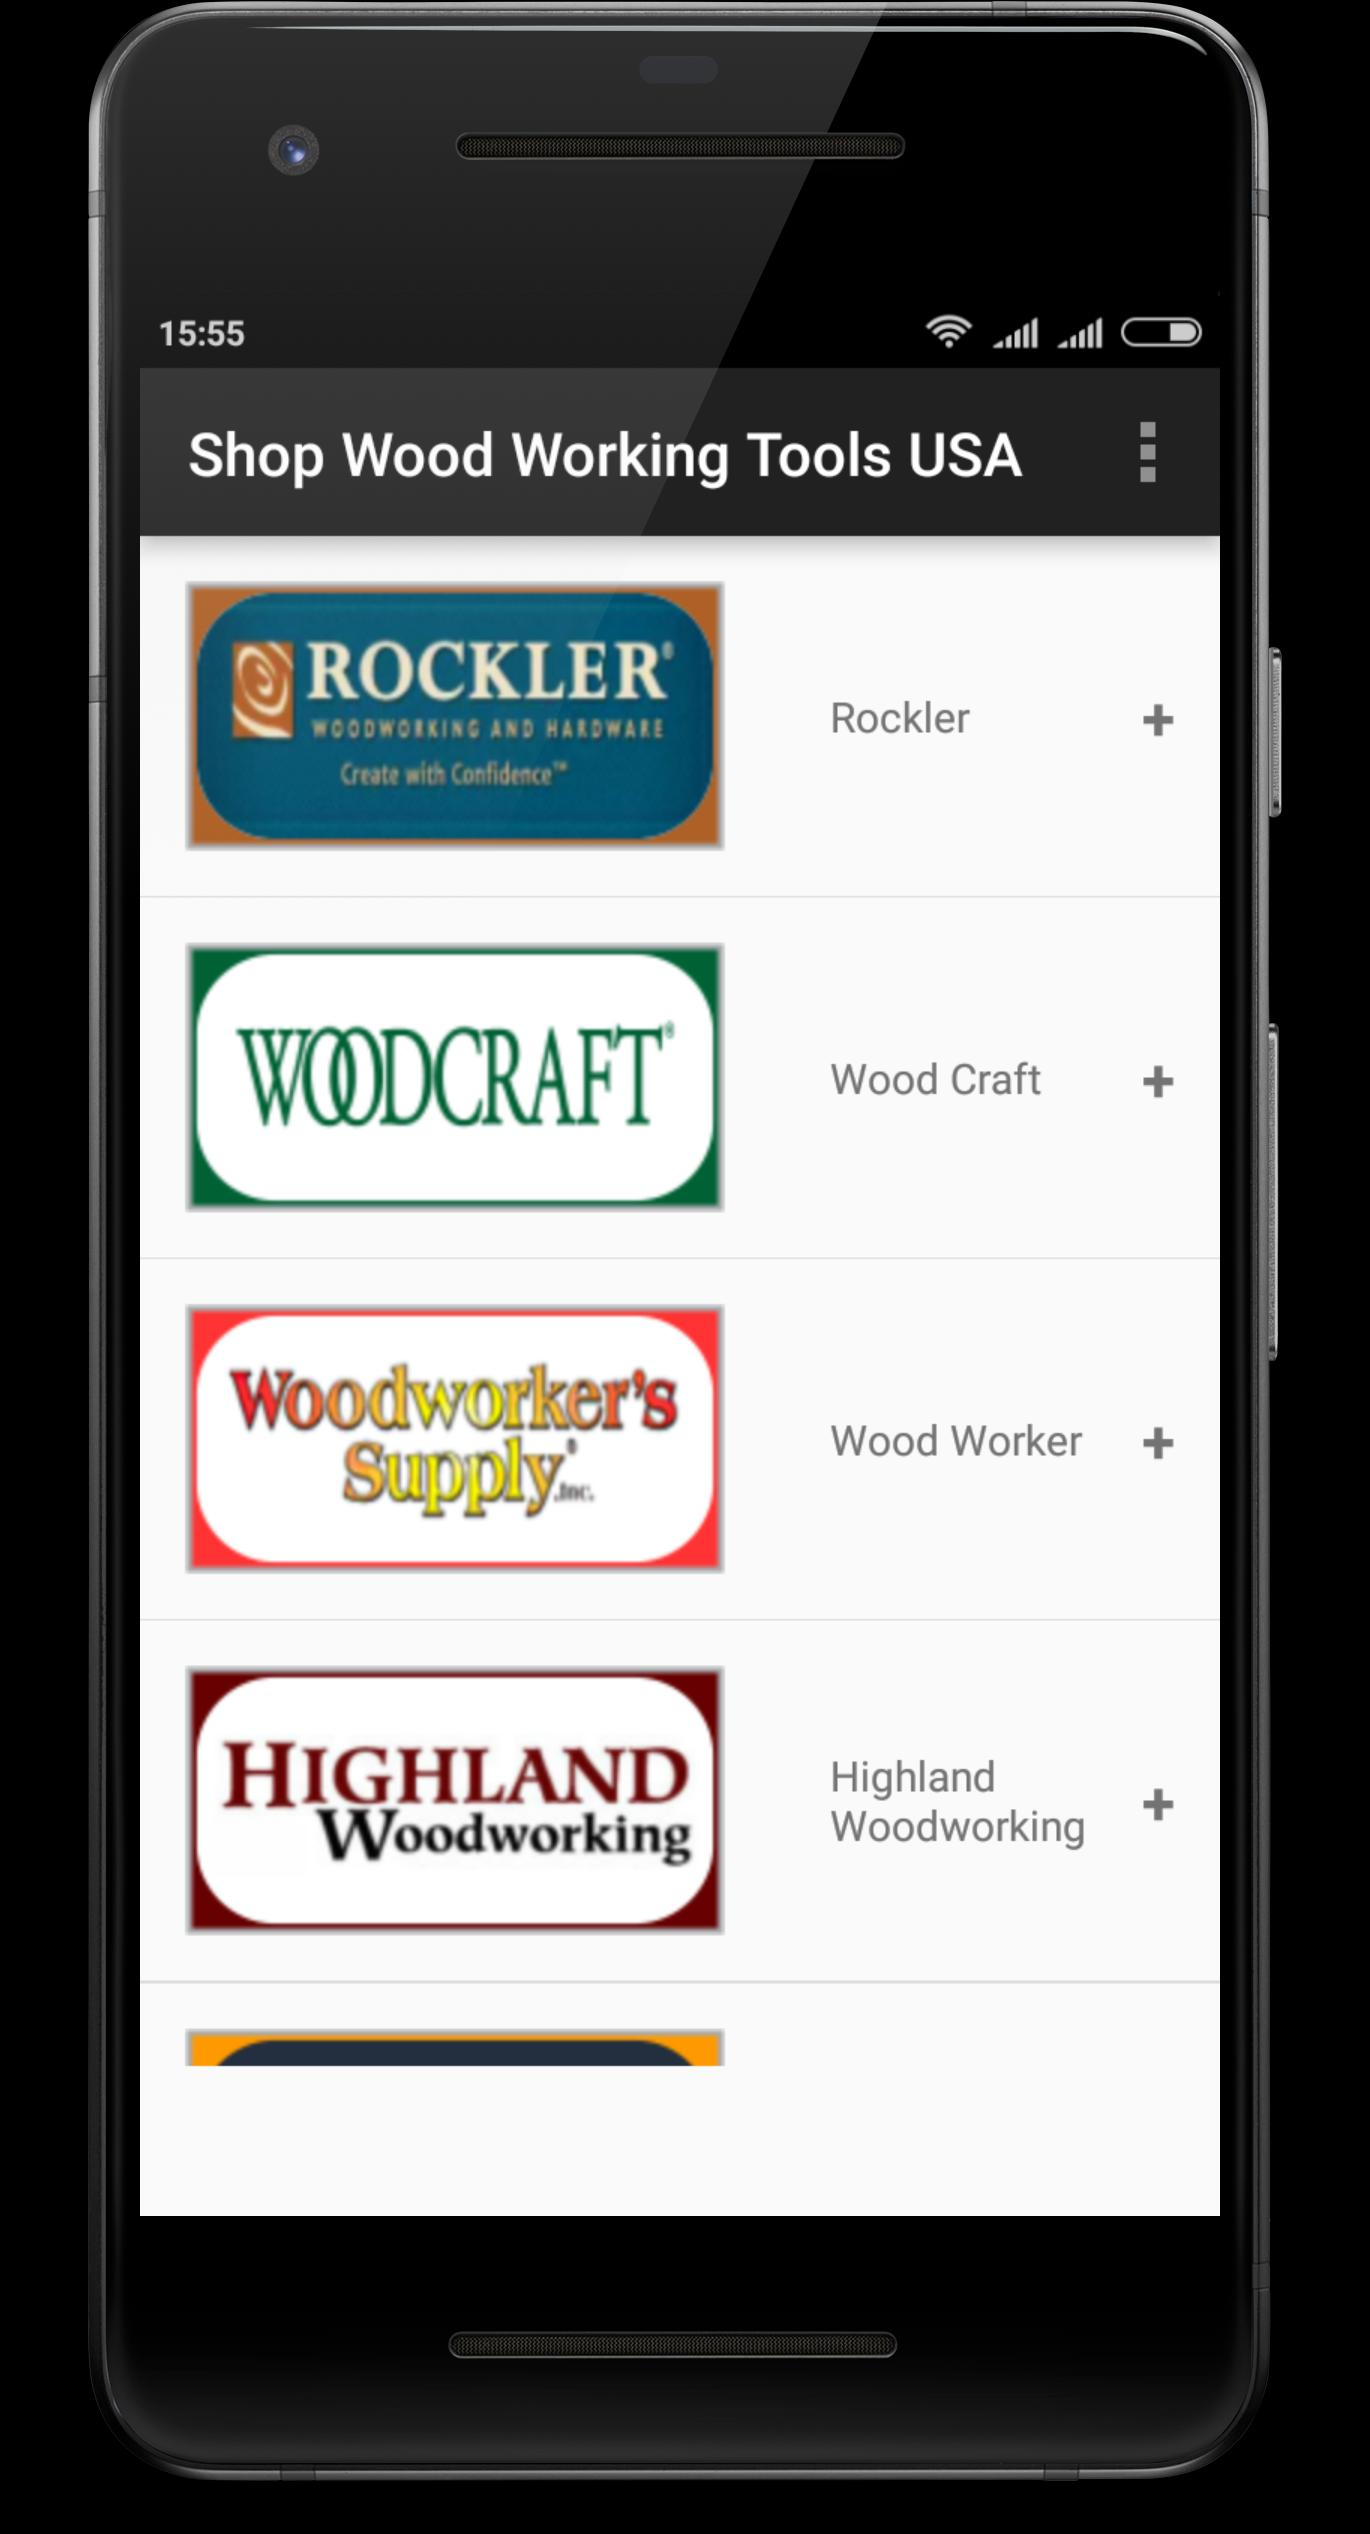 Shop Wood Working Tools Usa For Android Apk Download